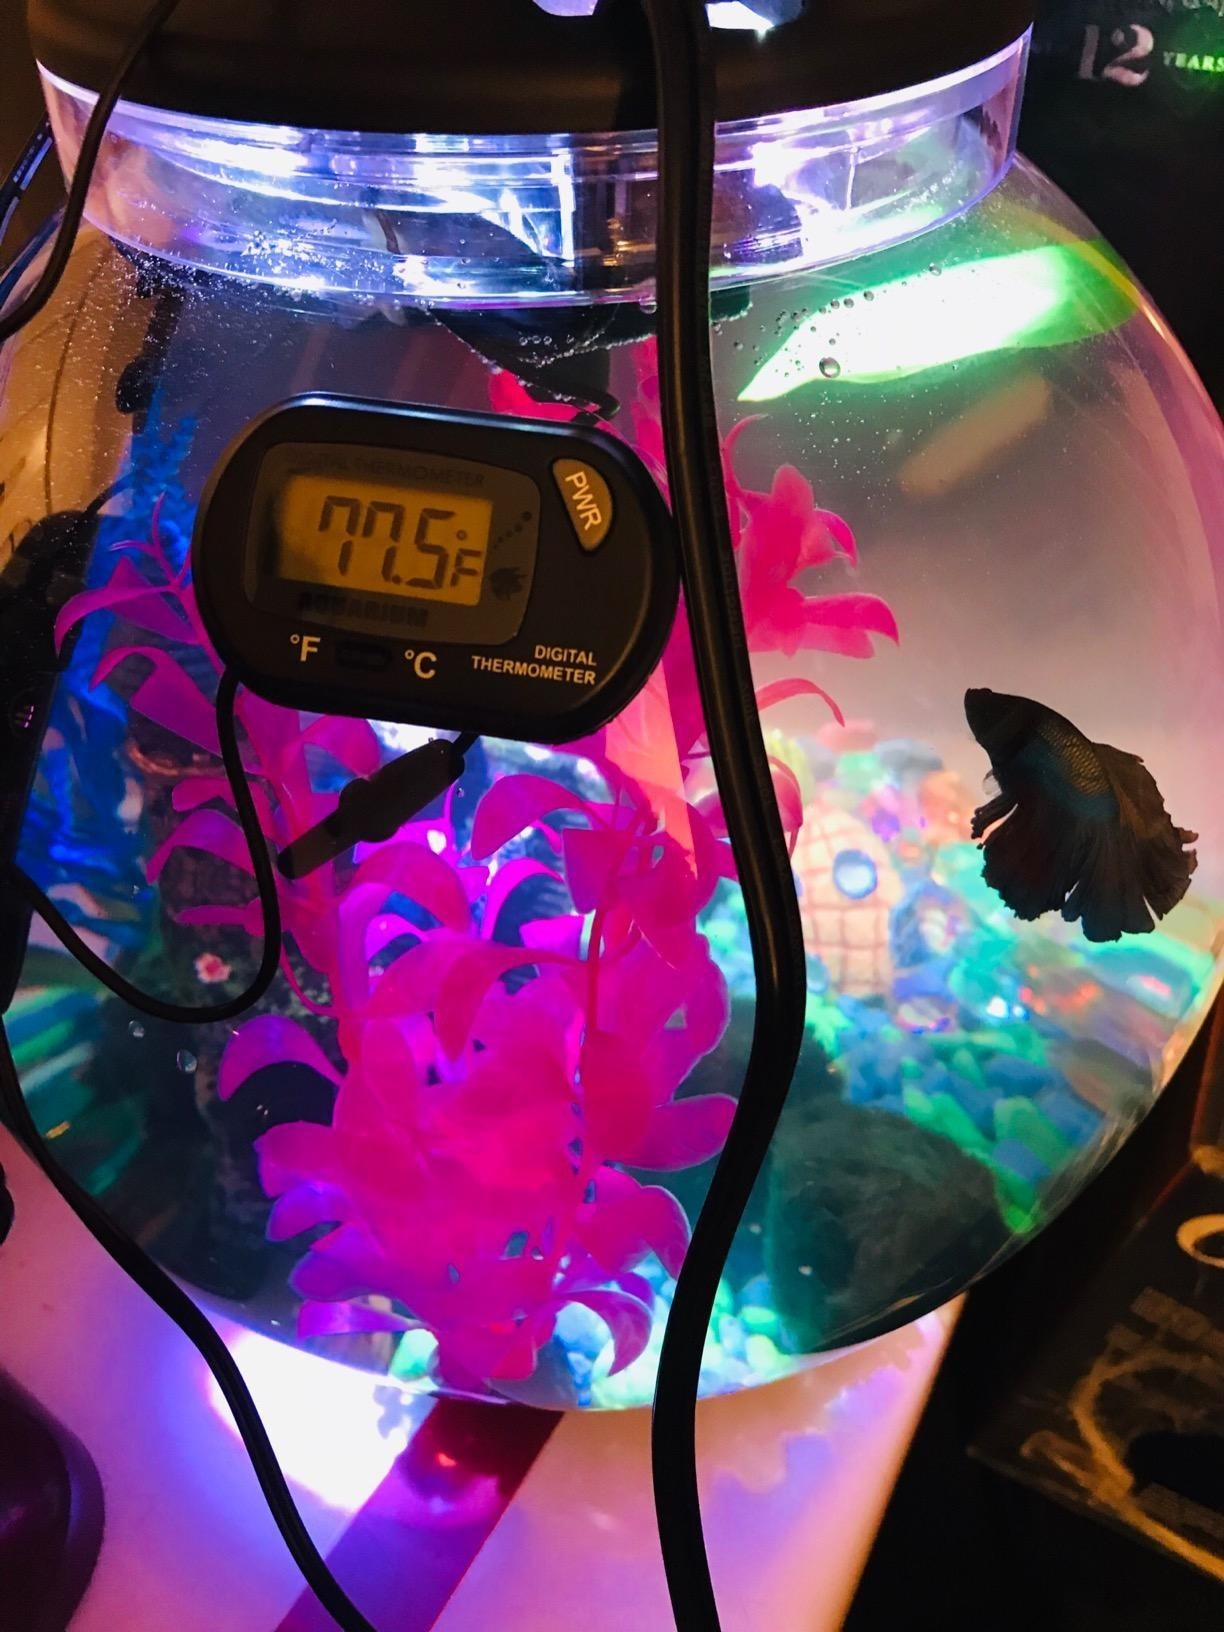 Reviewer's small fish bowl with a fish inside and the thermometer mounted on the outside